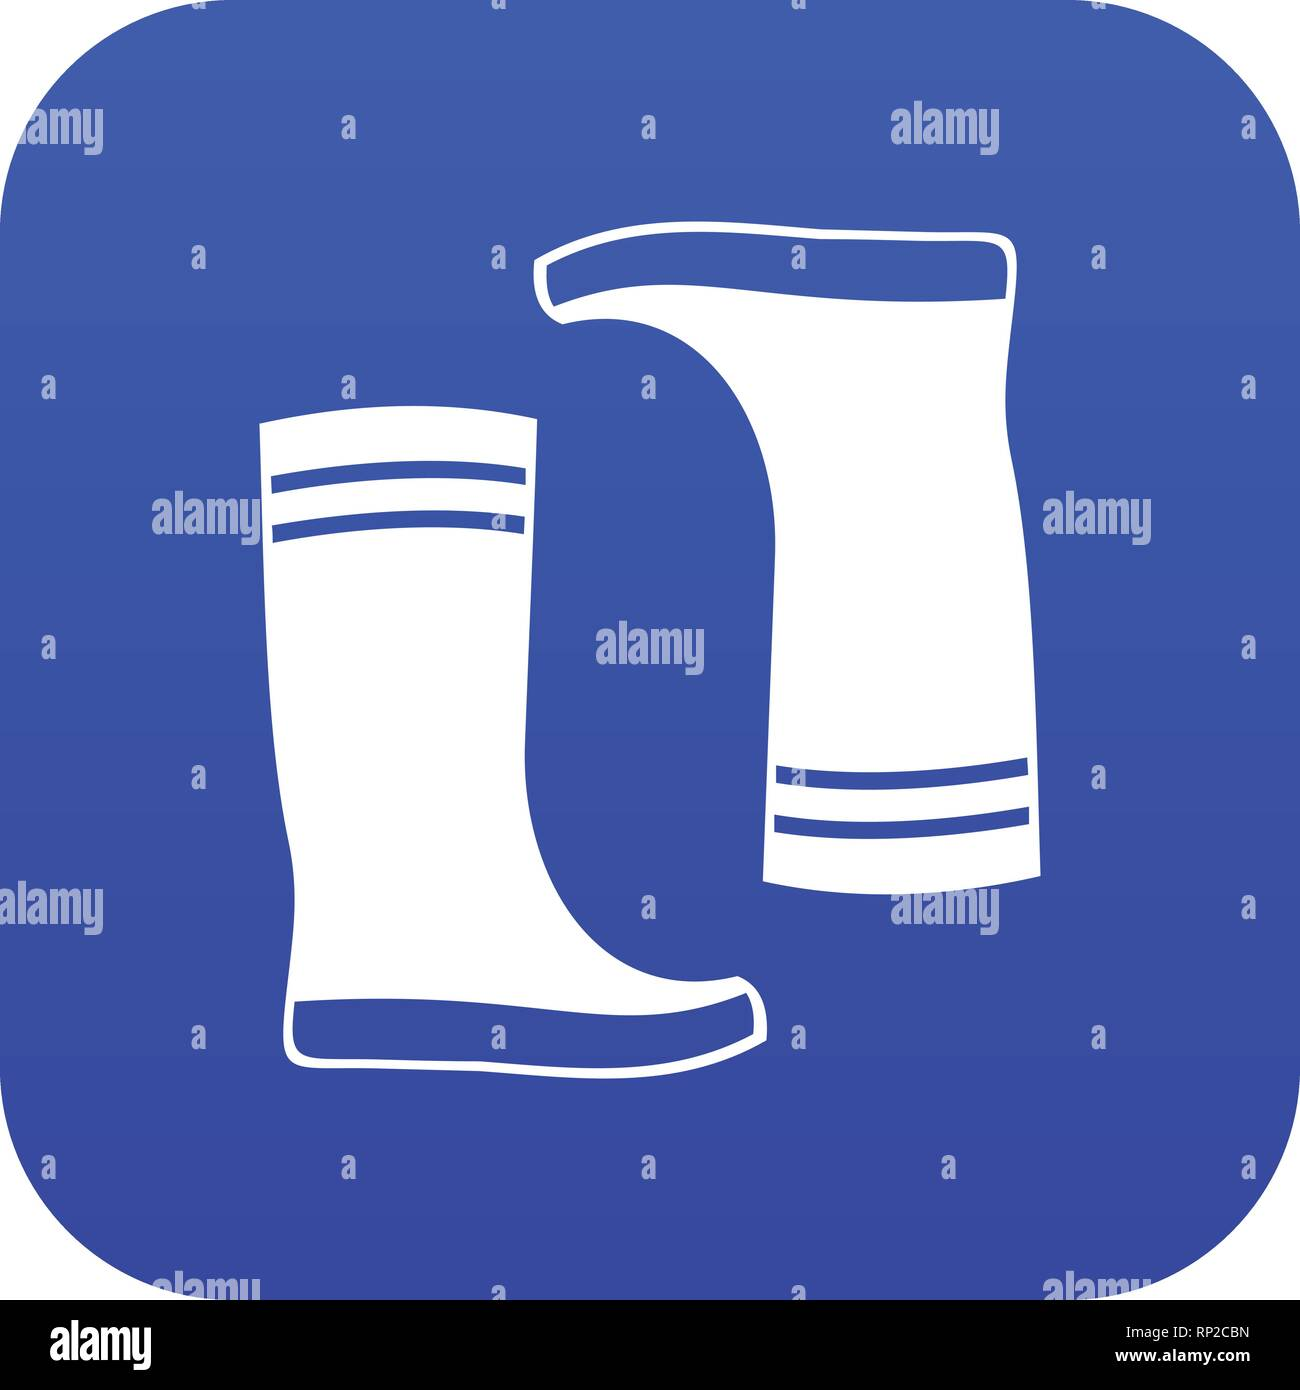 fc6d4b3f834 Rubber boots icon digital blue Stock Vector Art & Illustration ...